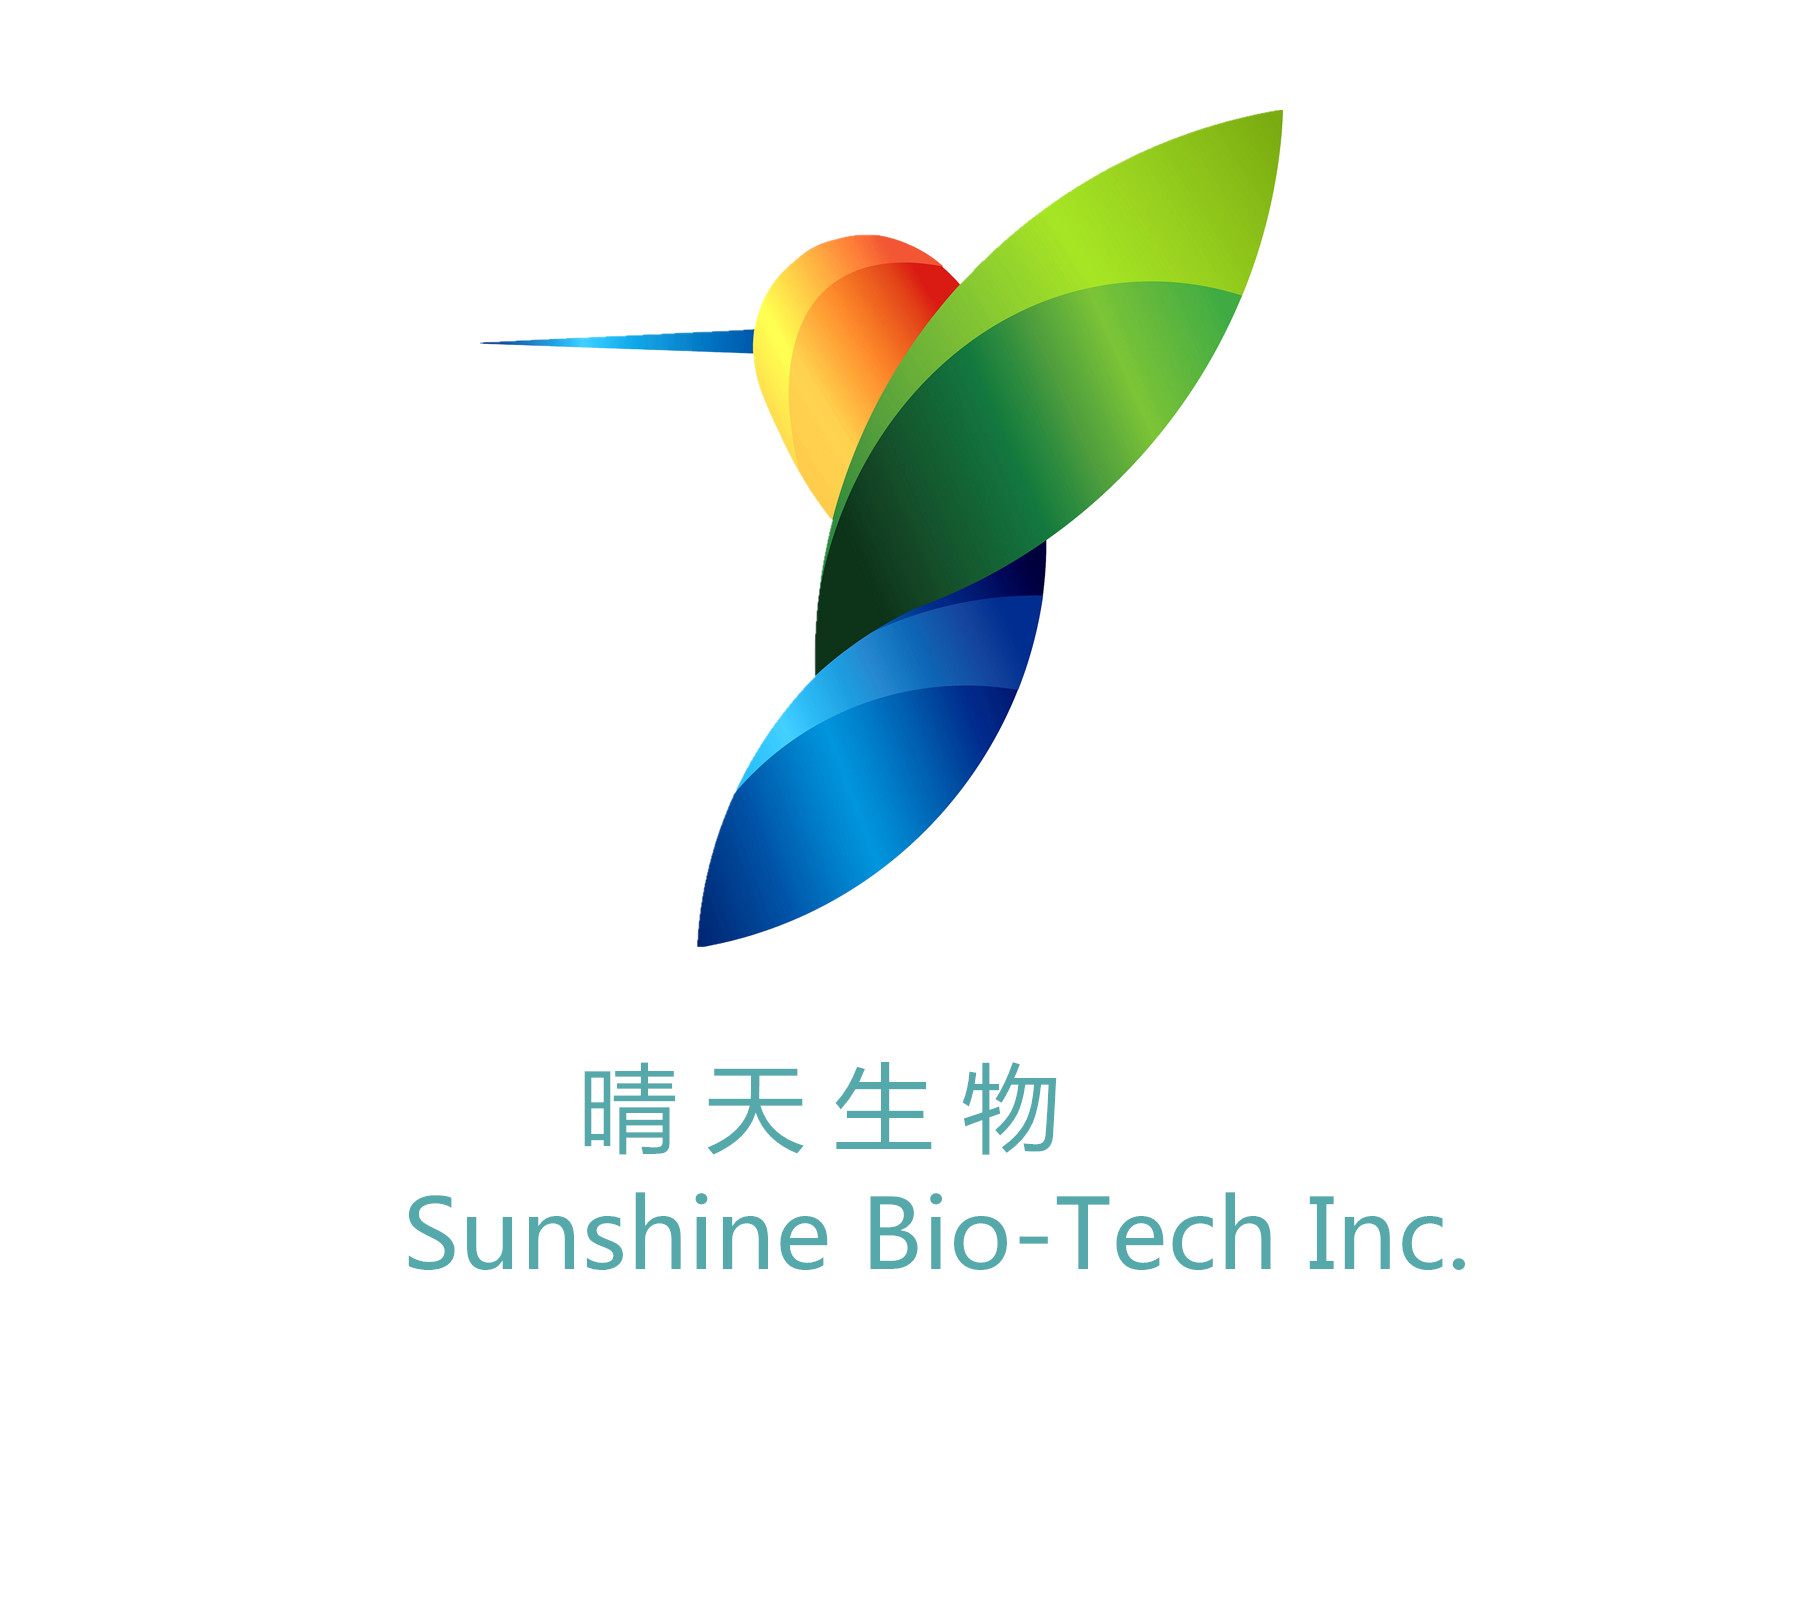 Hunan Sunshine Bio-tech, Inc. logo